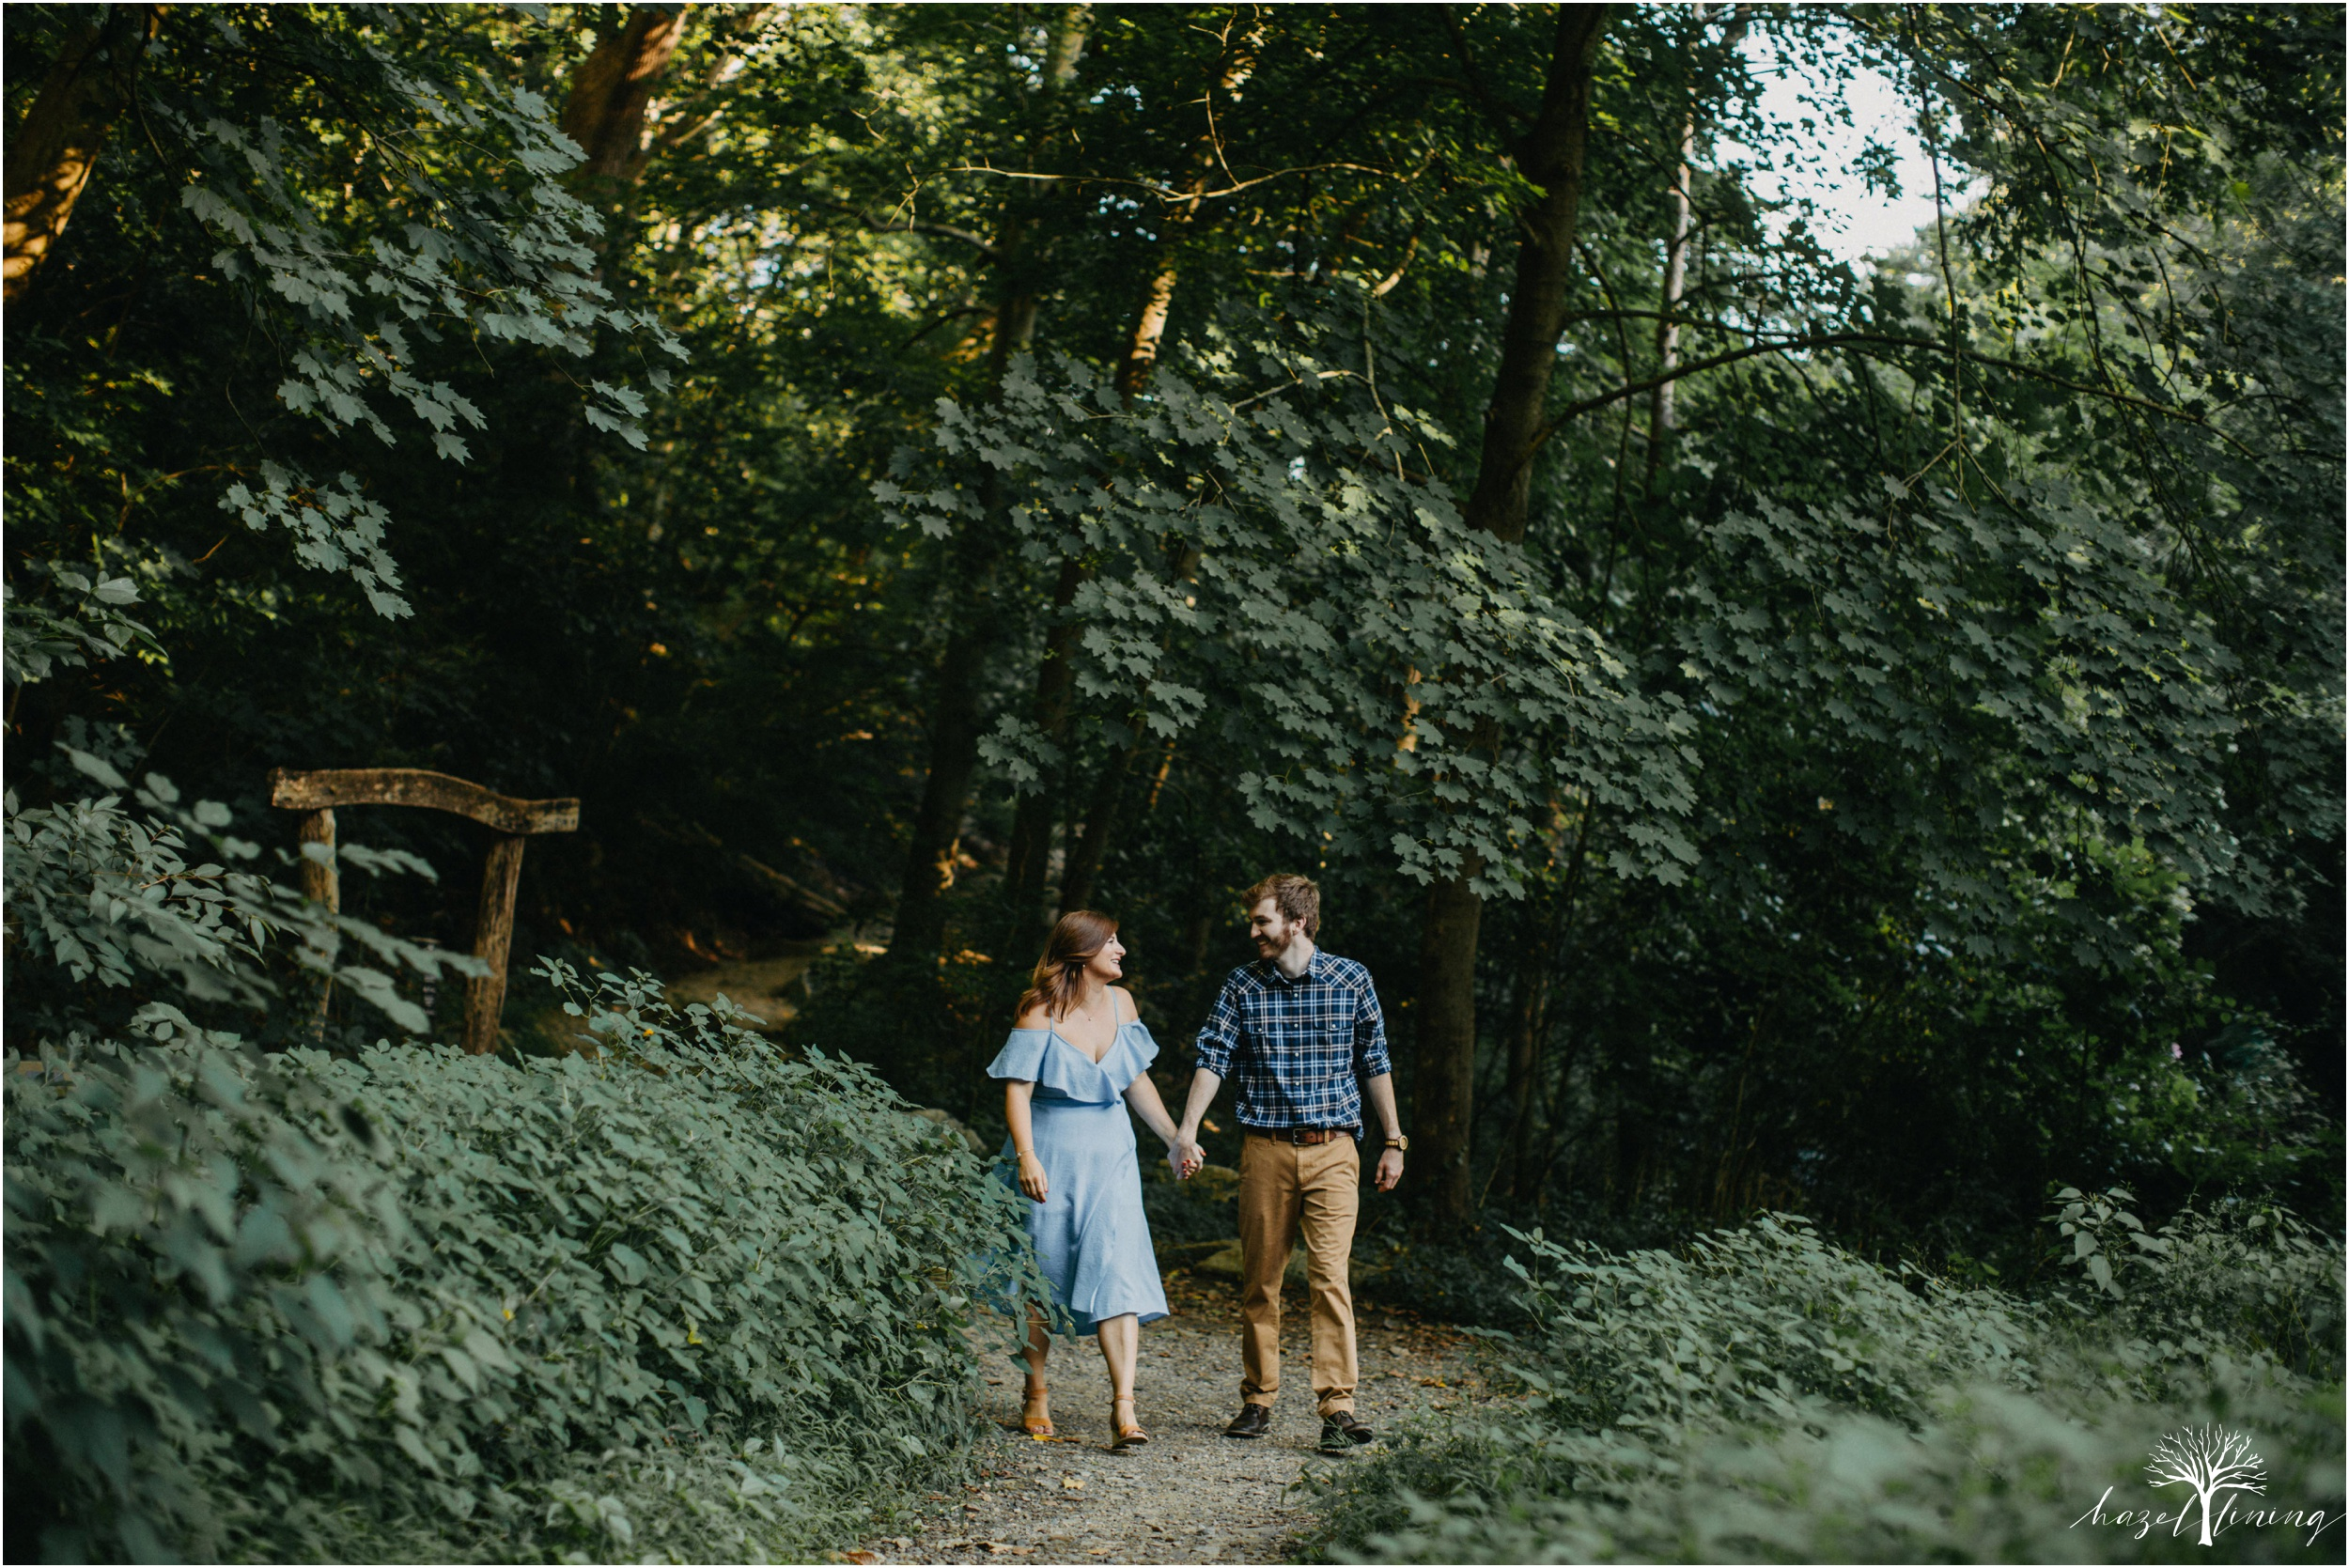 paige-kochey-chris-graham-valley-green-wissahickon-park-philadelphia-summer-engagement-session-hazel-lining-photography-destination-elopement-wedding-engagement-photography_0030.jpg